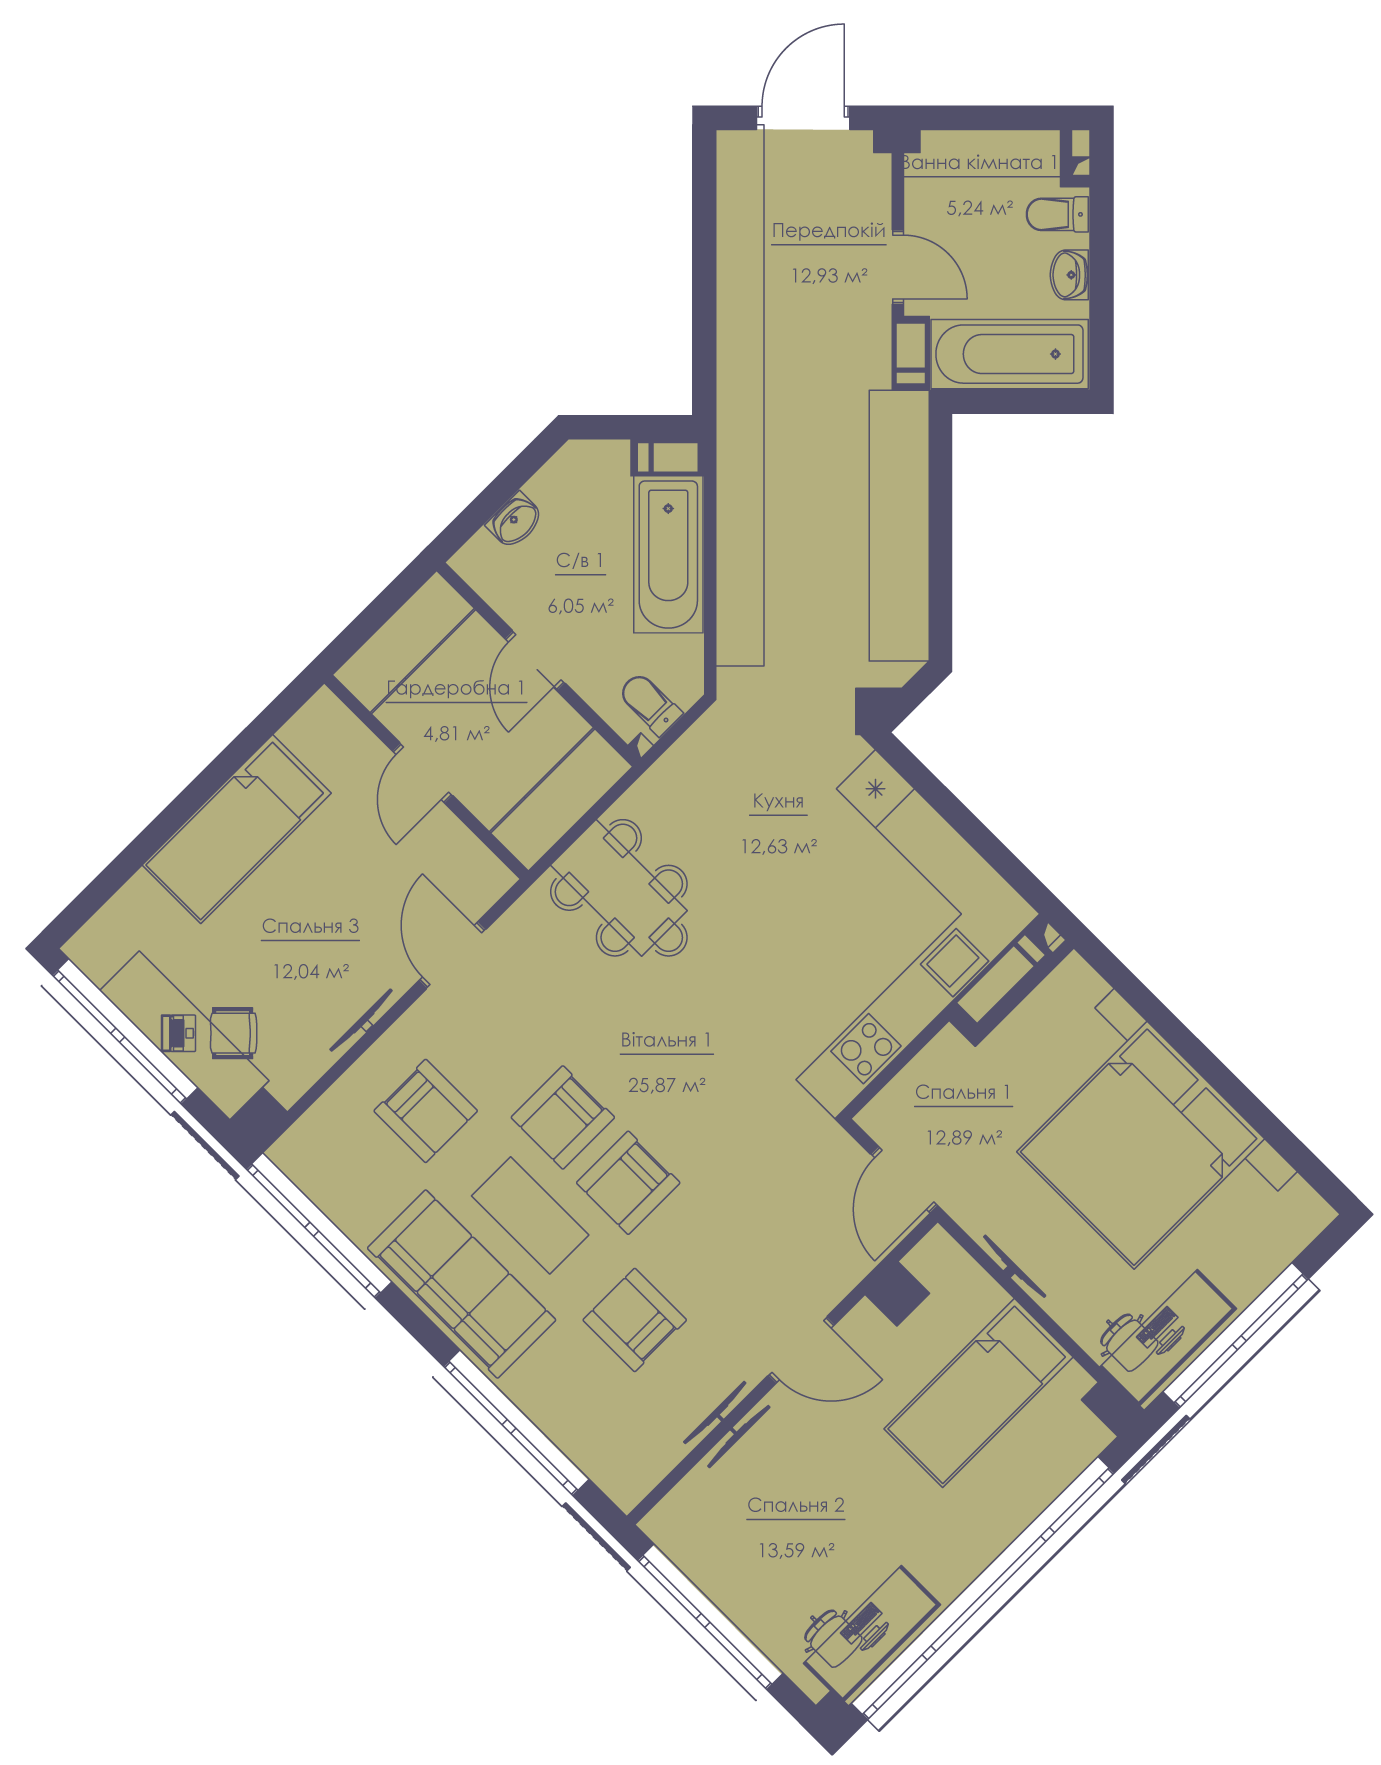 Apartment layout KV_114_3.4a_1_1_2-1